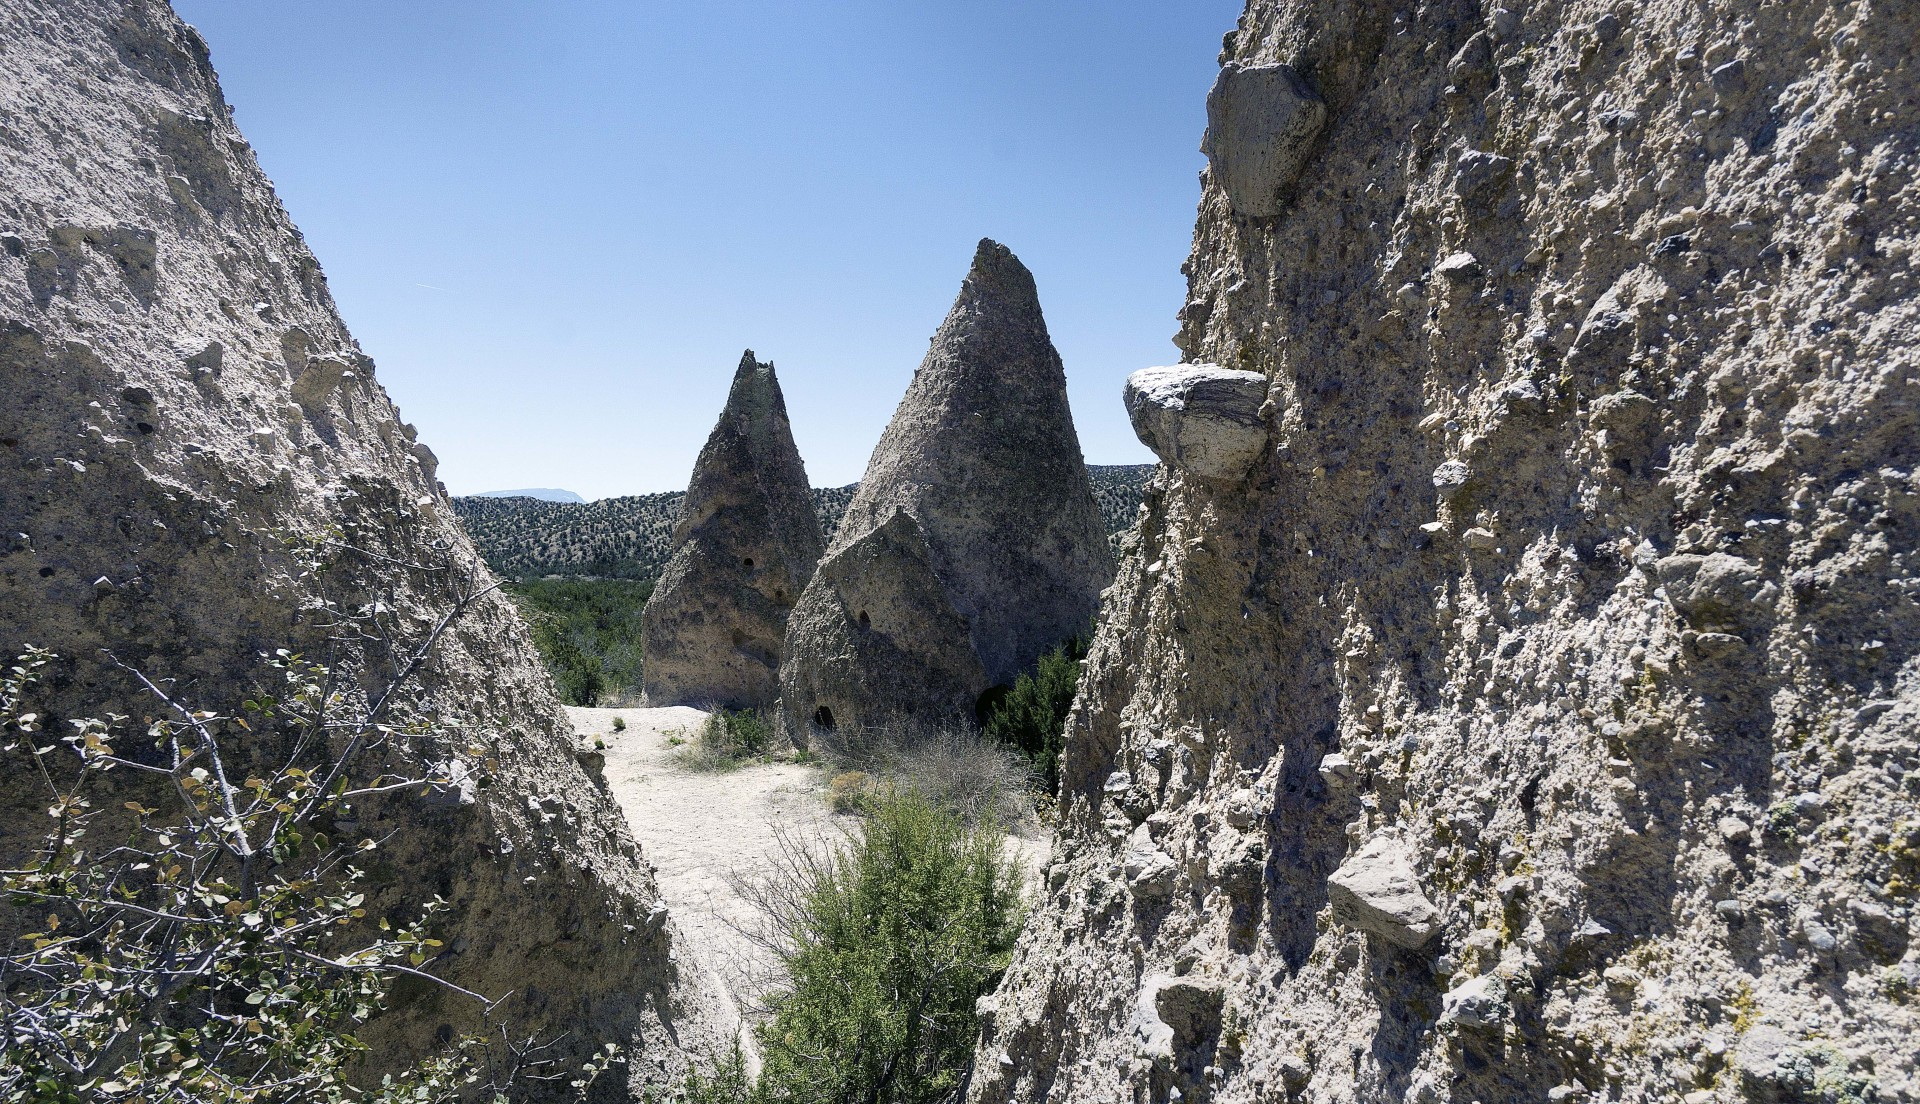 looking through the tent rocks on the lower trail